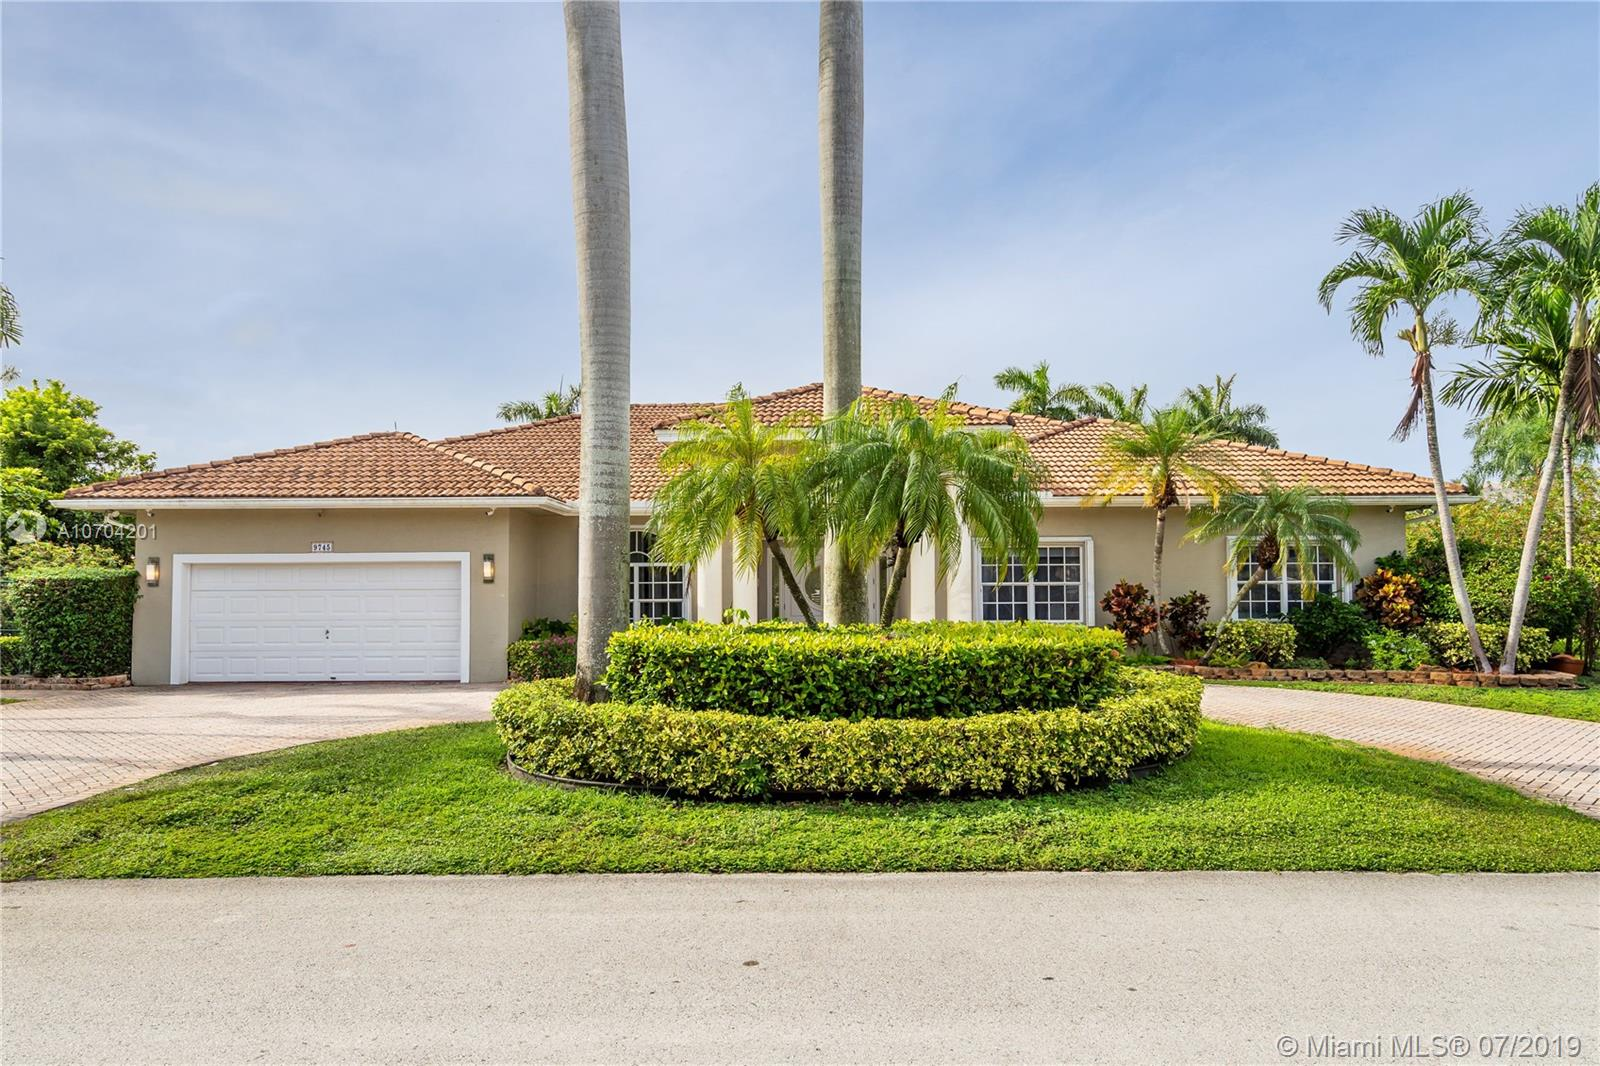 9745 SW 58th St, Kendall, Florida